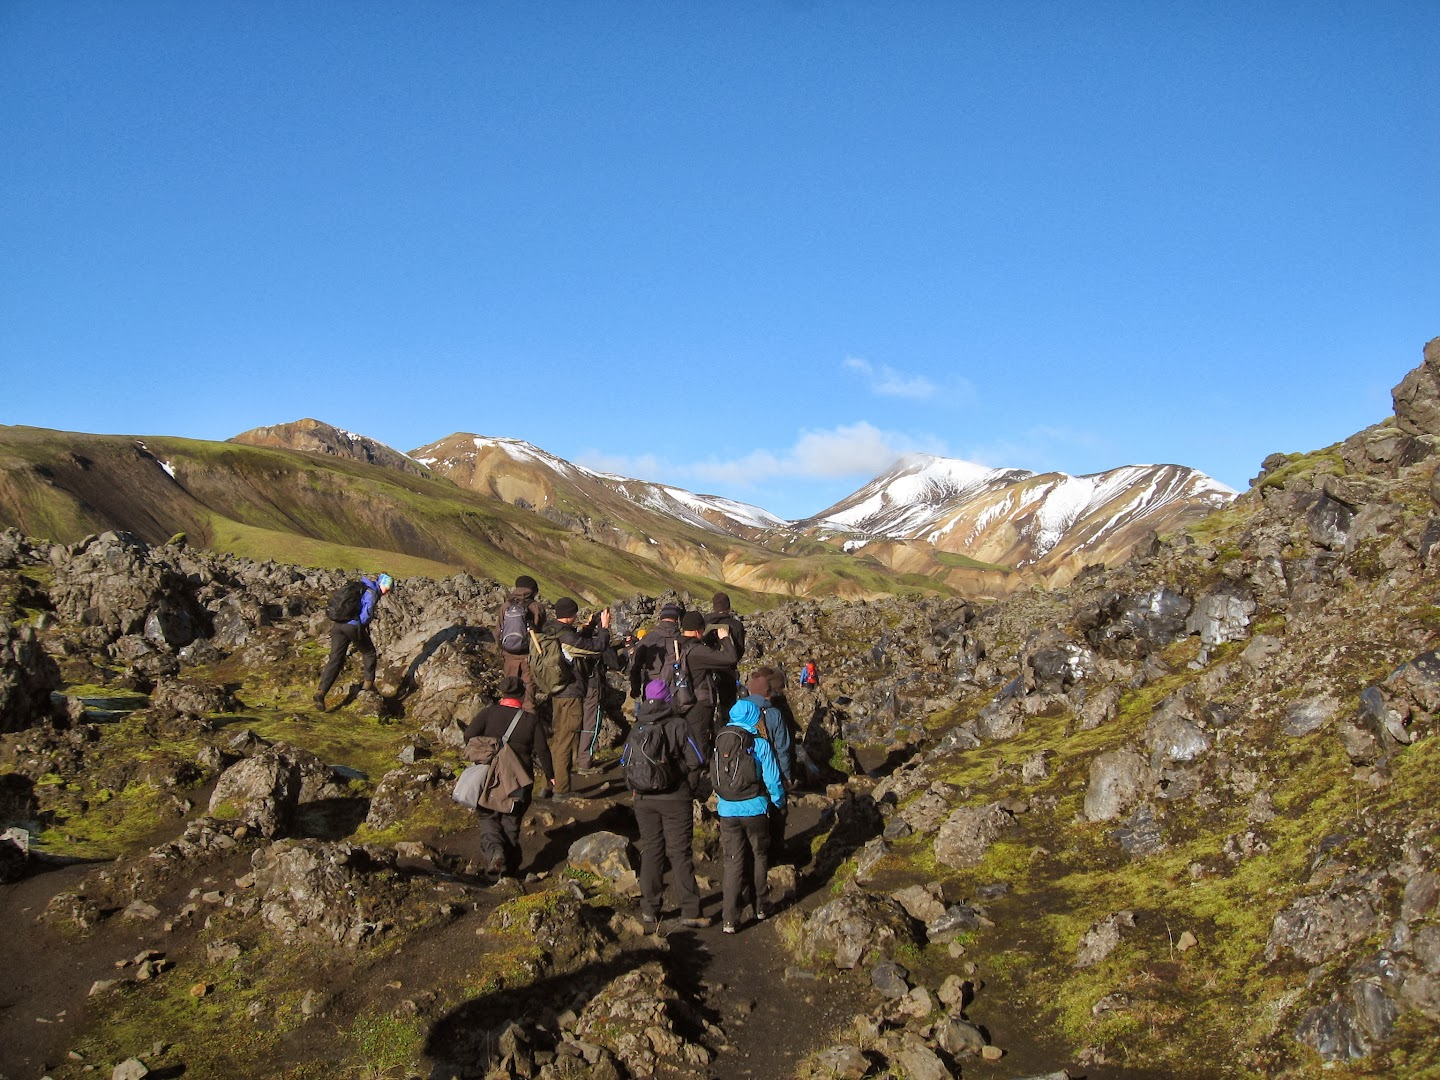 5.9.2013 Day 4 Hike from Landmannalaugar to Hraftinusker and back, Riina